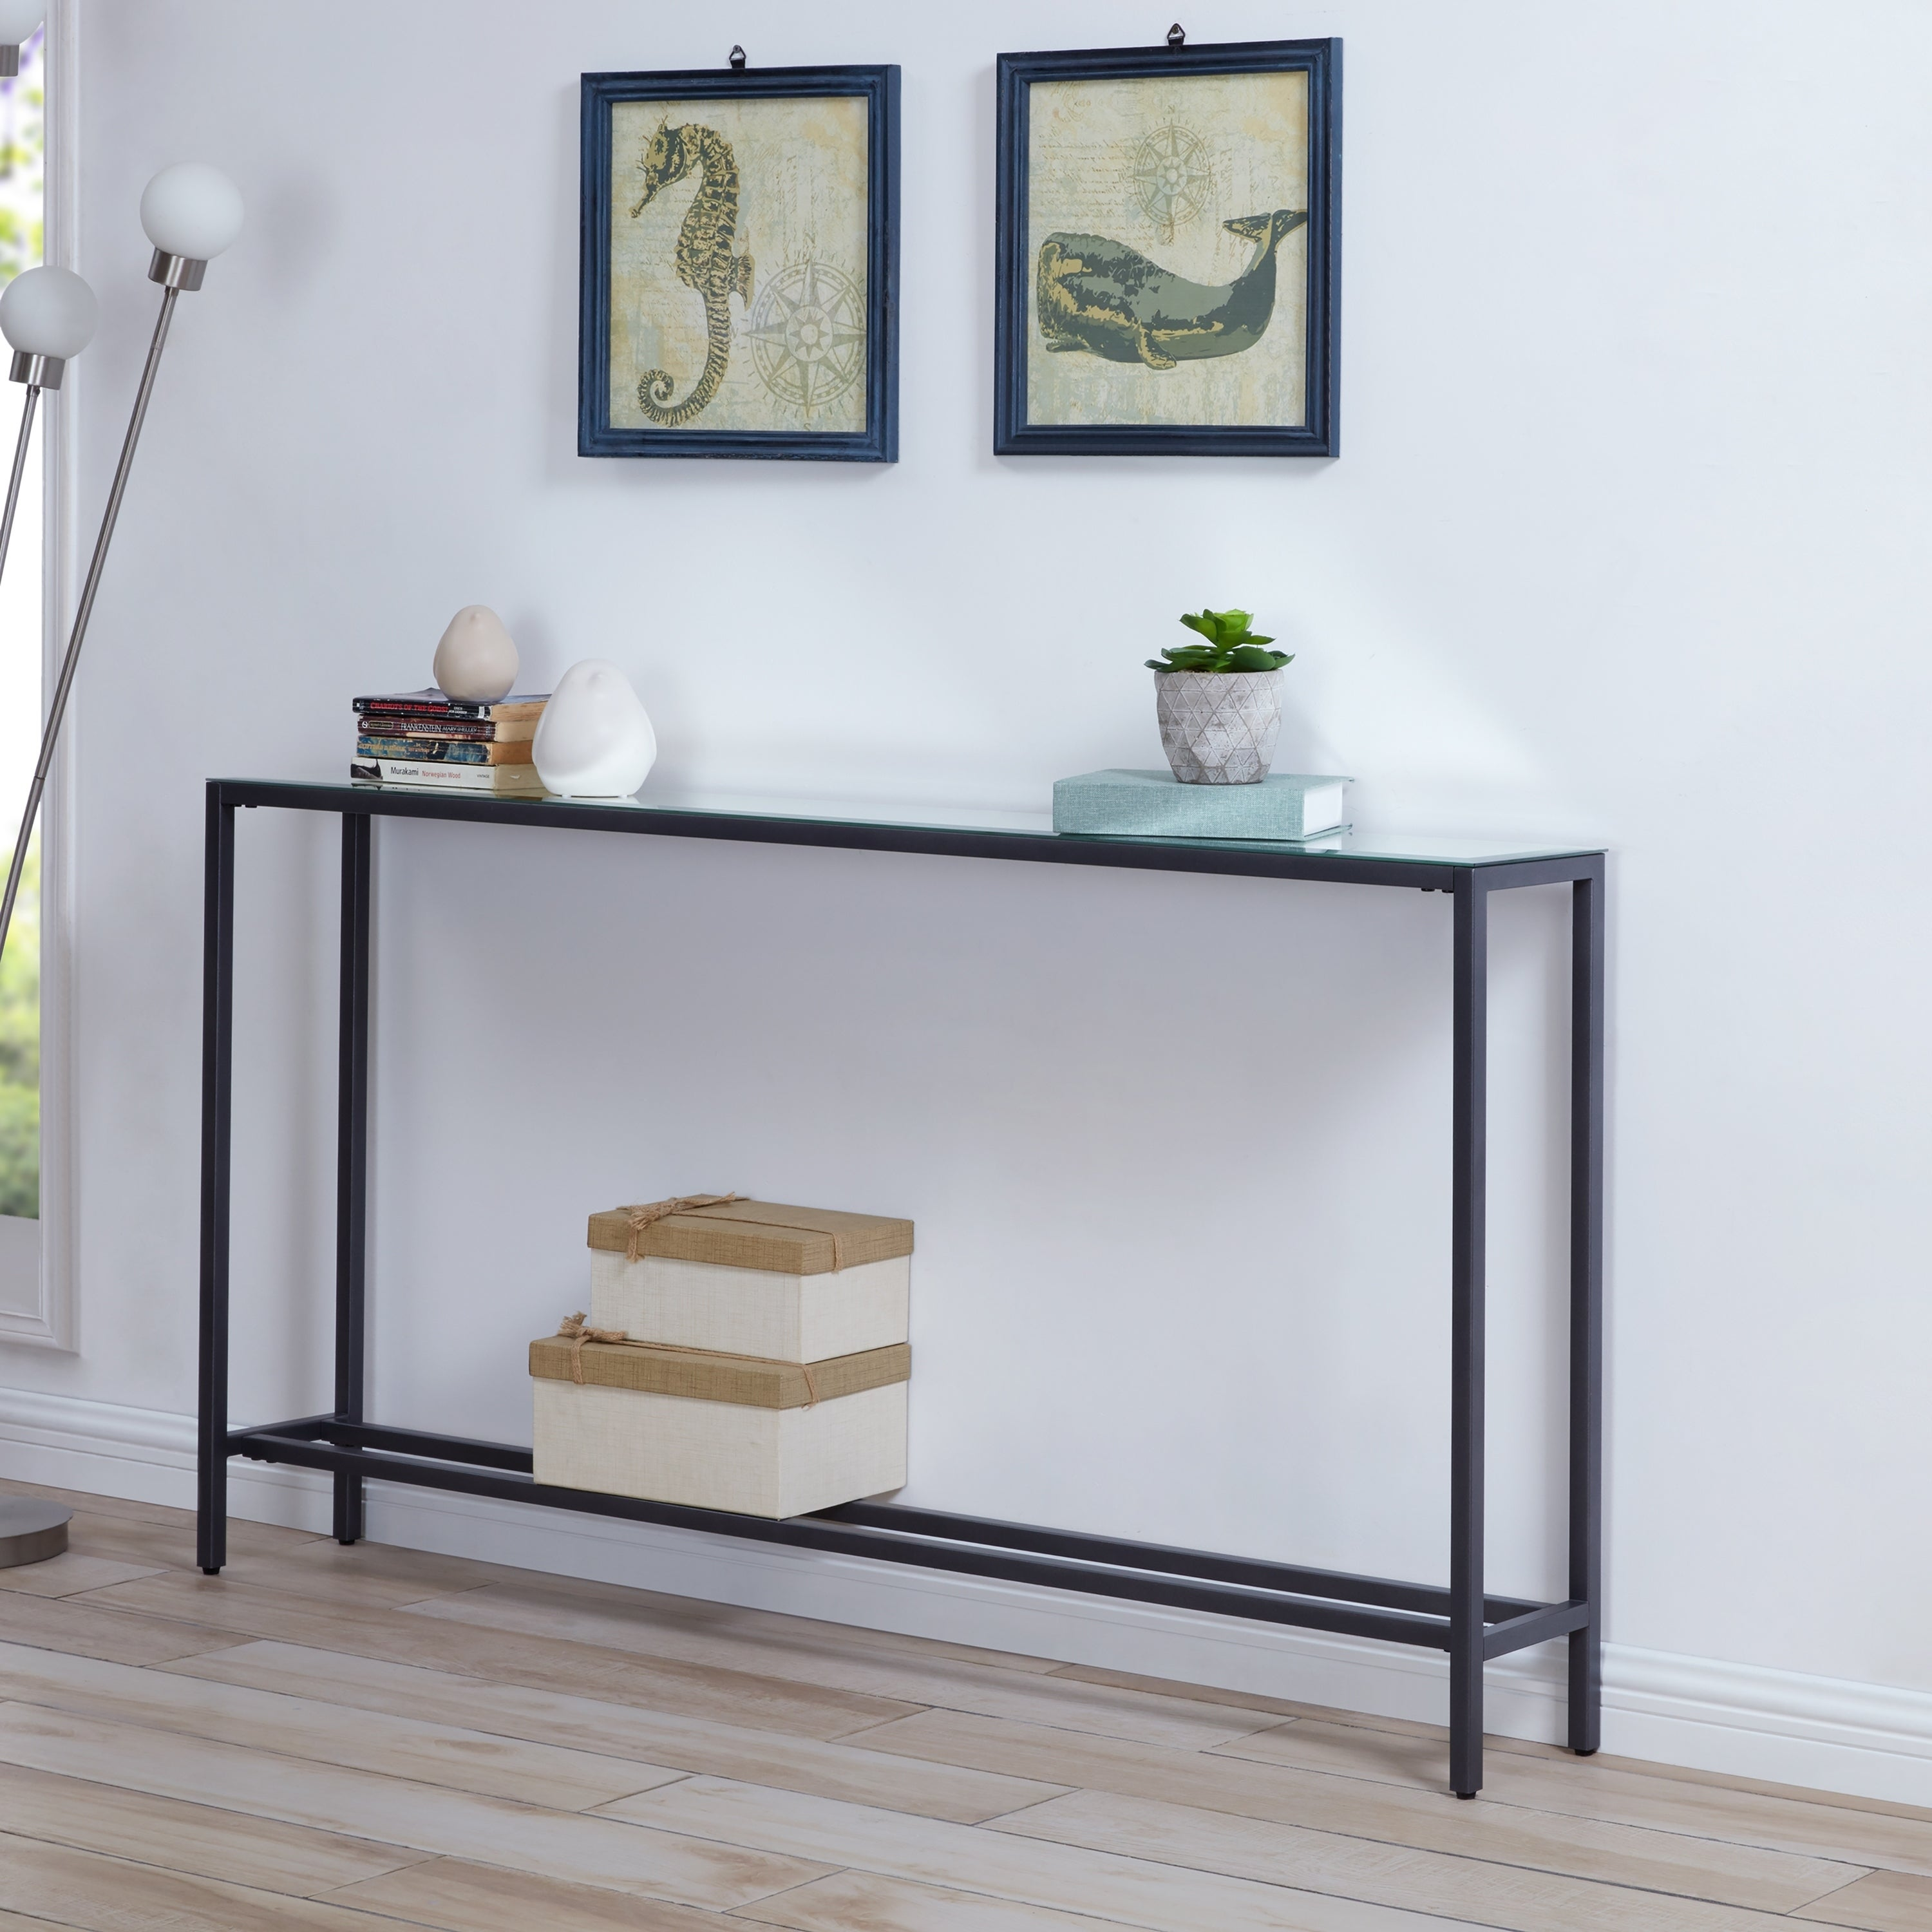 Silver Orchid Ham Narrow Long Console Table W Mirrored Top